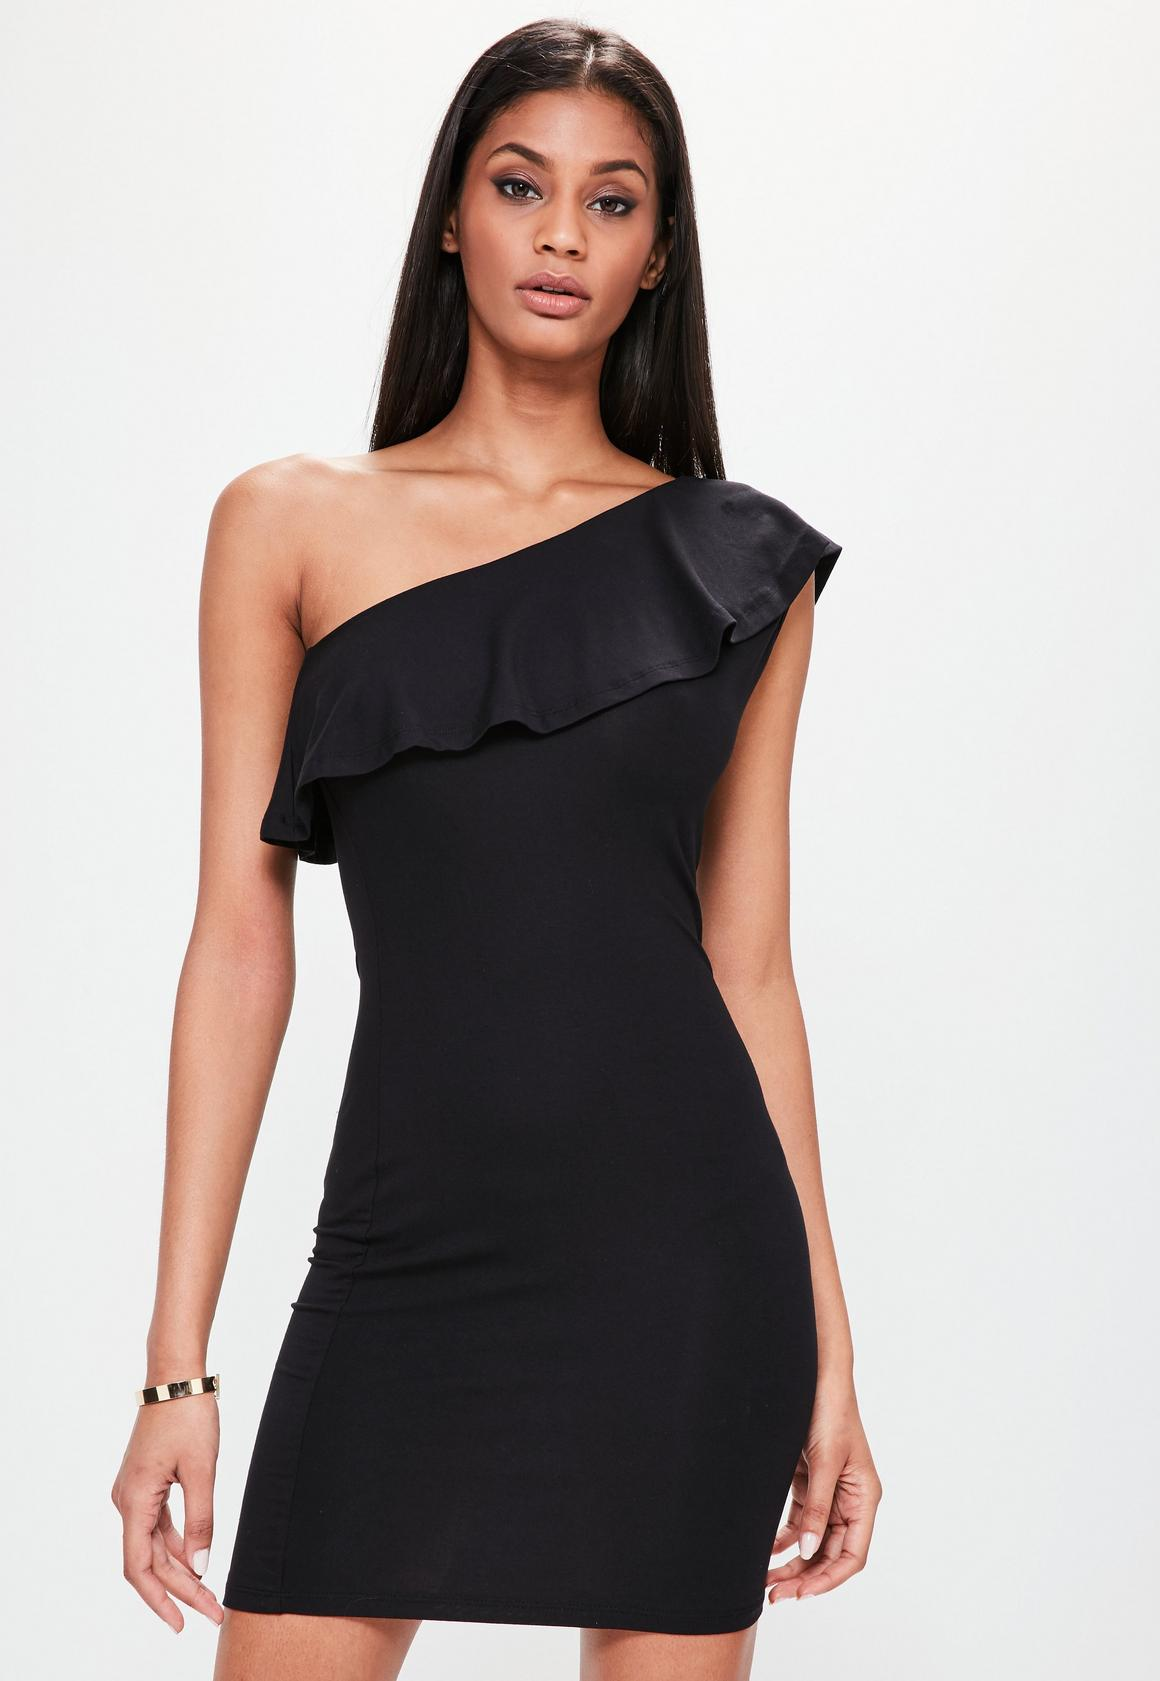 Black One Shoulder Frill Mini Dress | Missguided